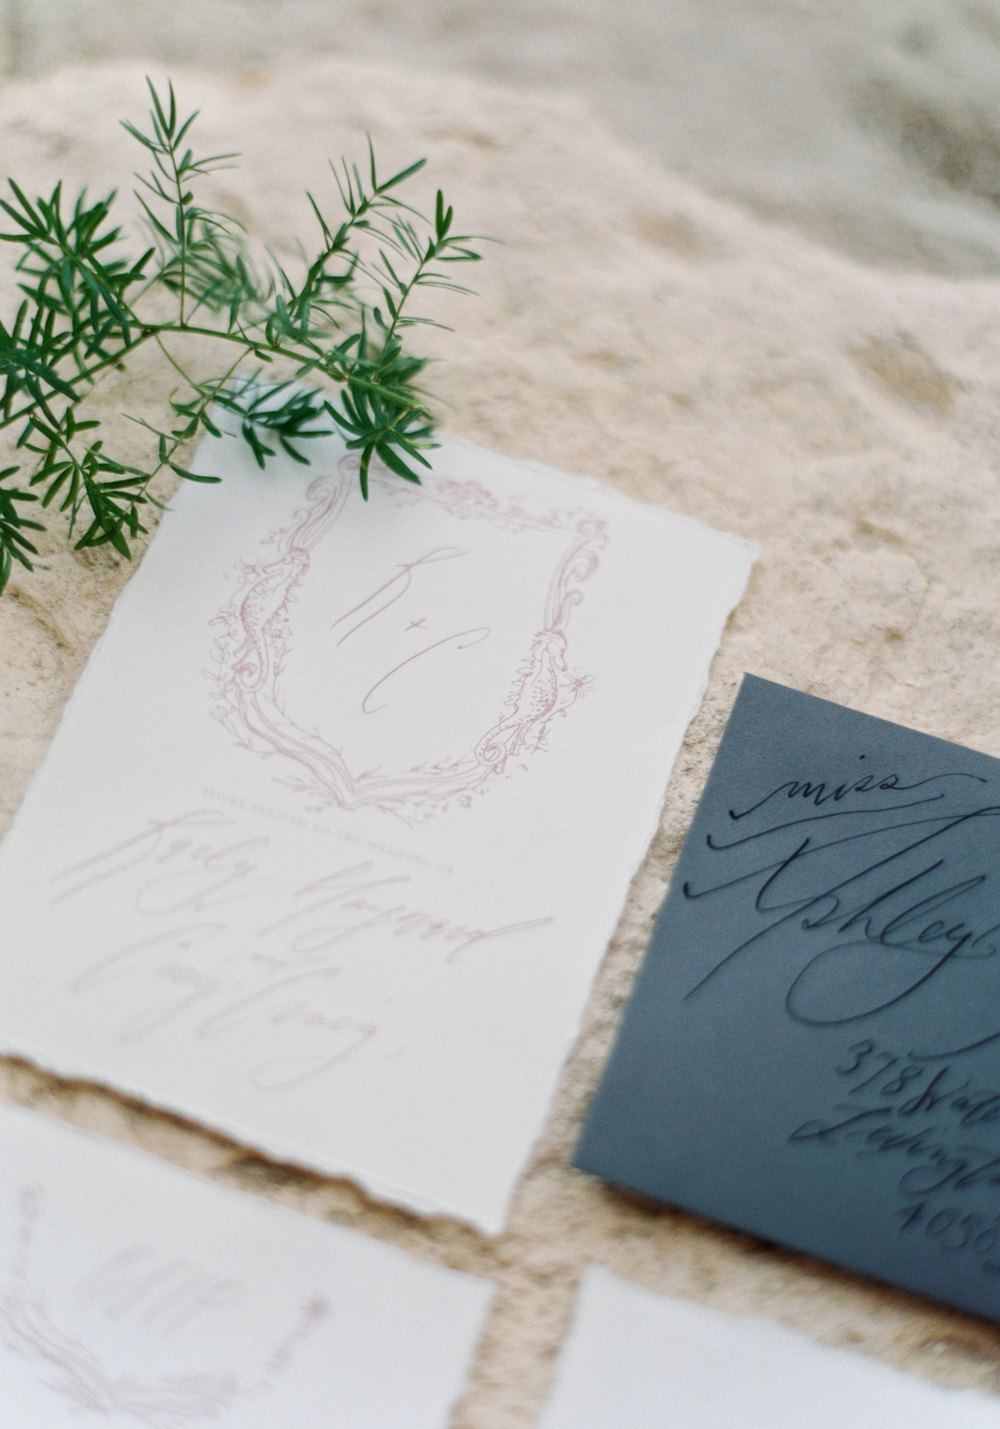 Blush and grey calligraphy invitation suite for a Mexico destination wedding on the beach. www.me-and-mrjones.com